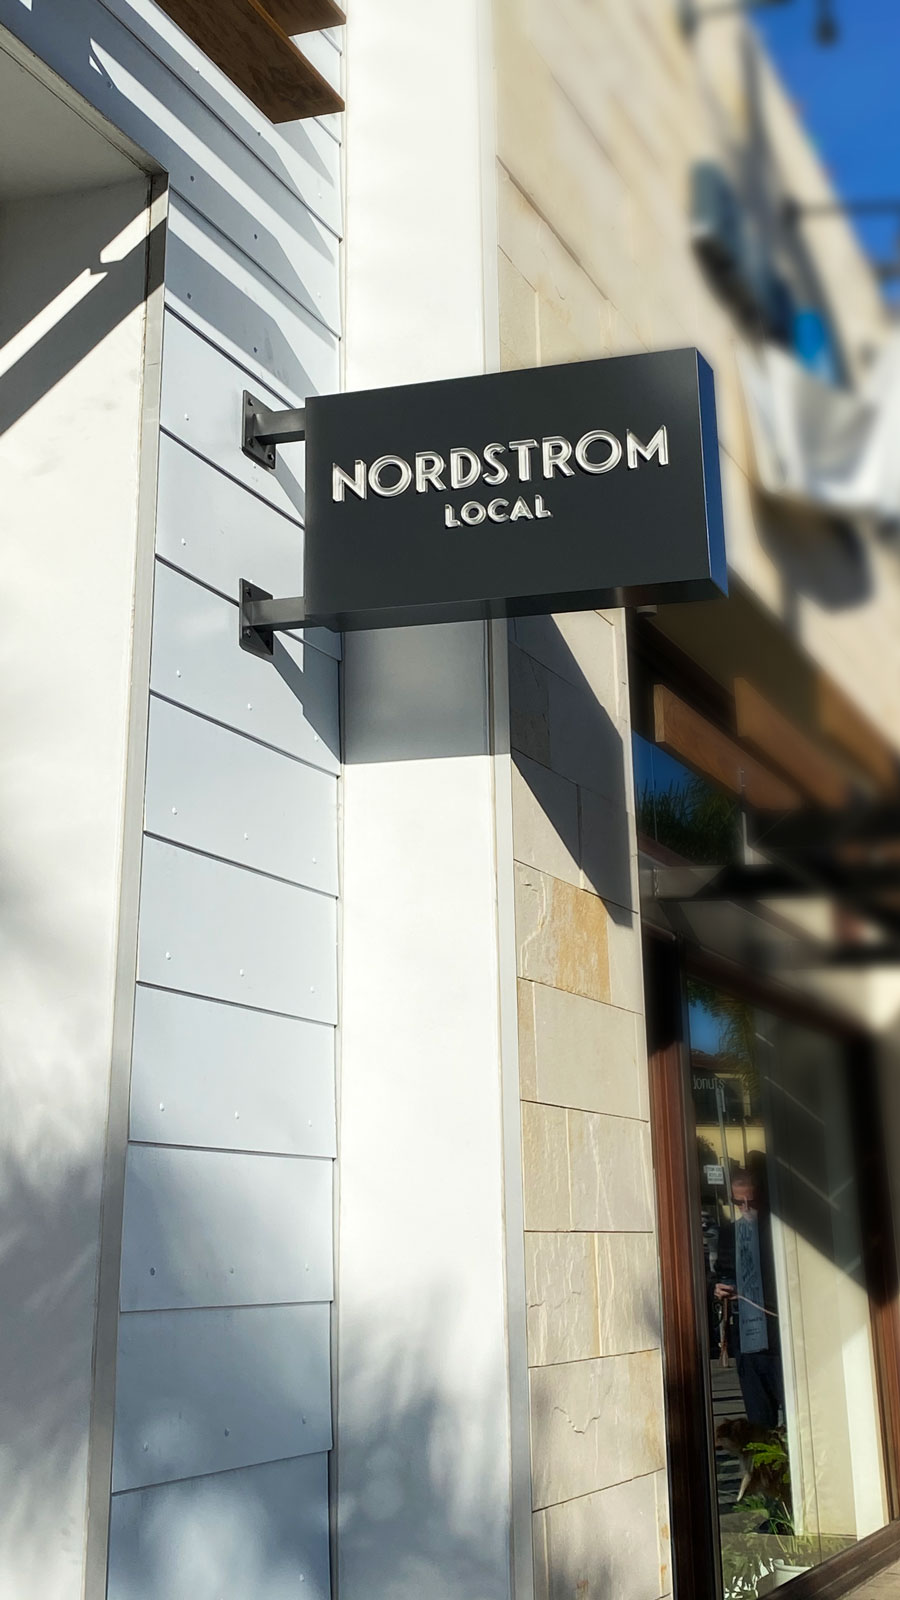 Nordstrom Local wall-blade lightbox sign